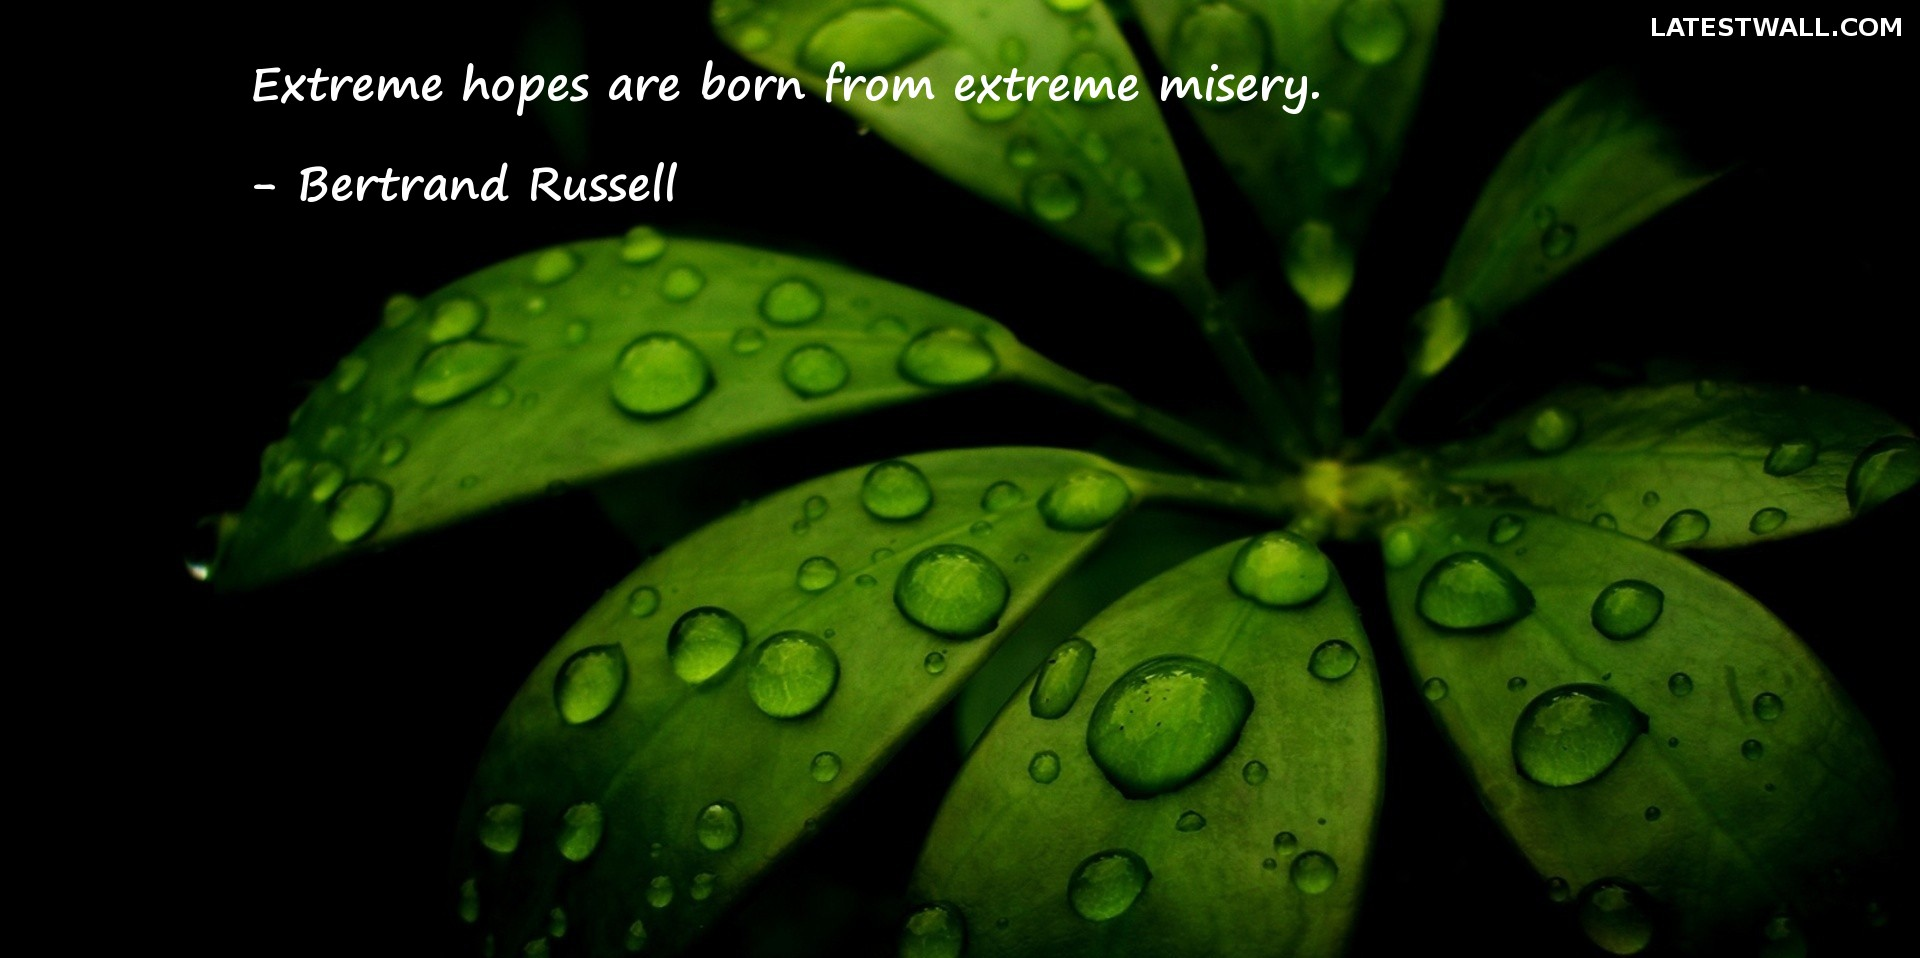 Extreme hopes are born from extreme misery.